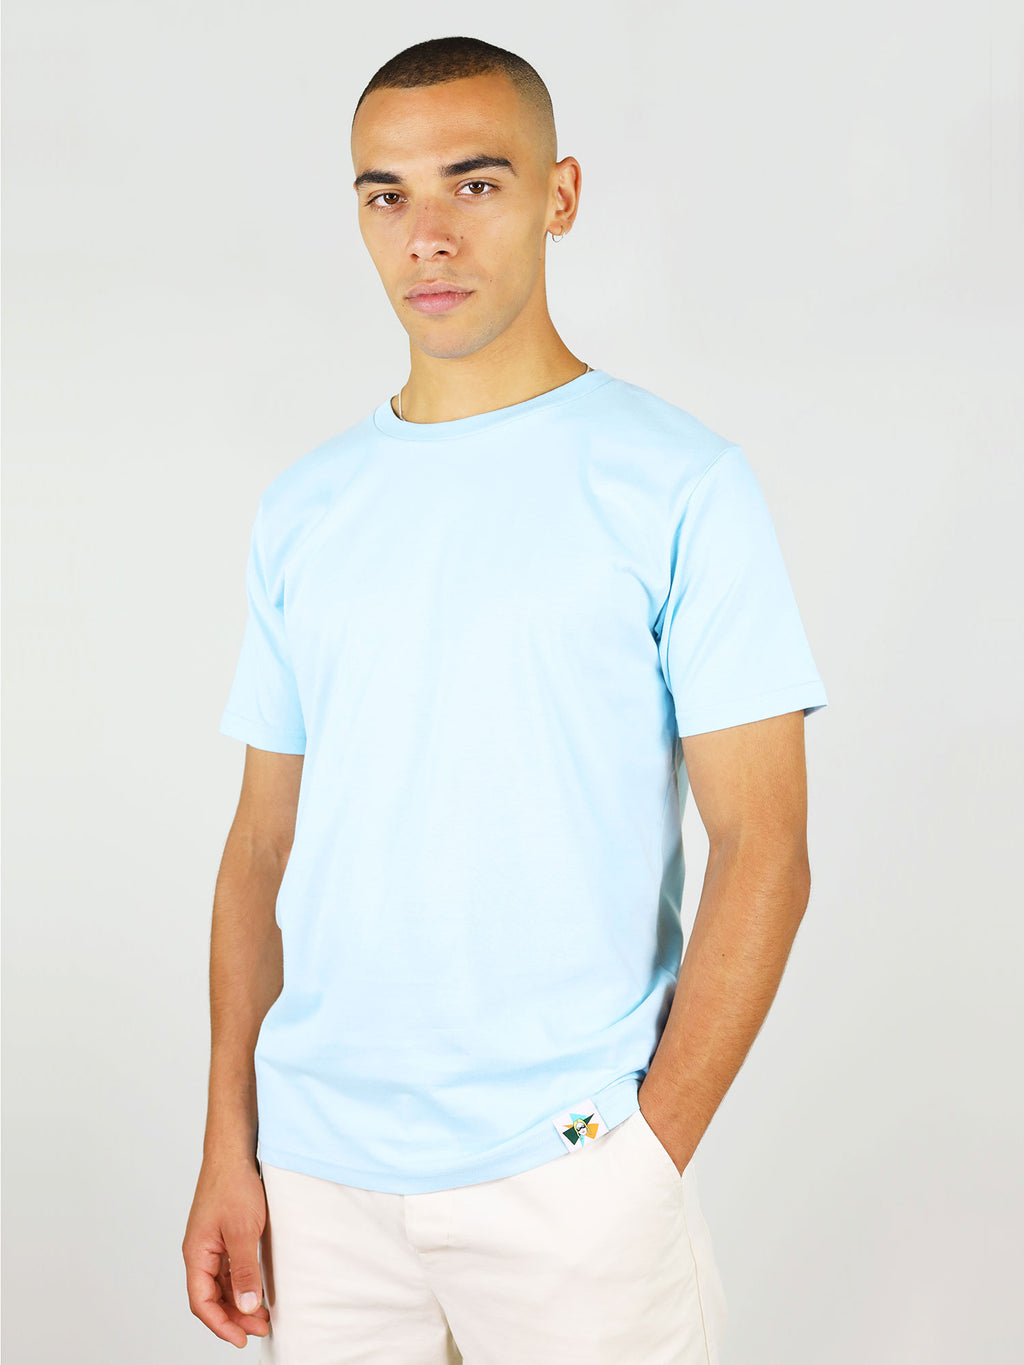 Light blue organic cotton t-shirt for men by blonde gone rogue